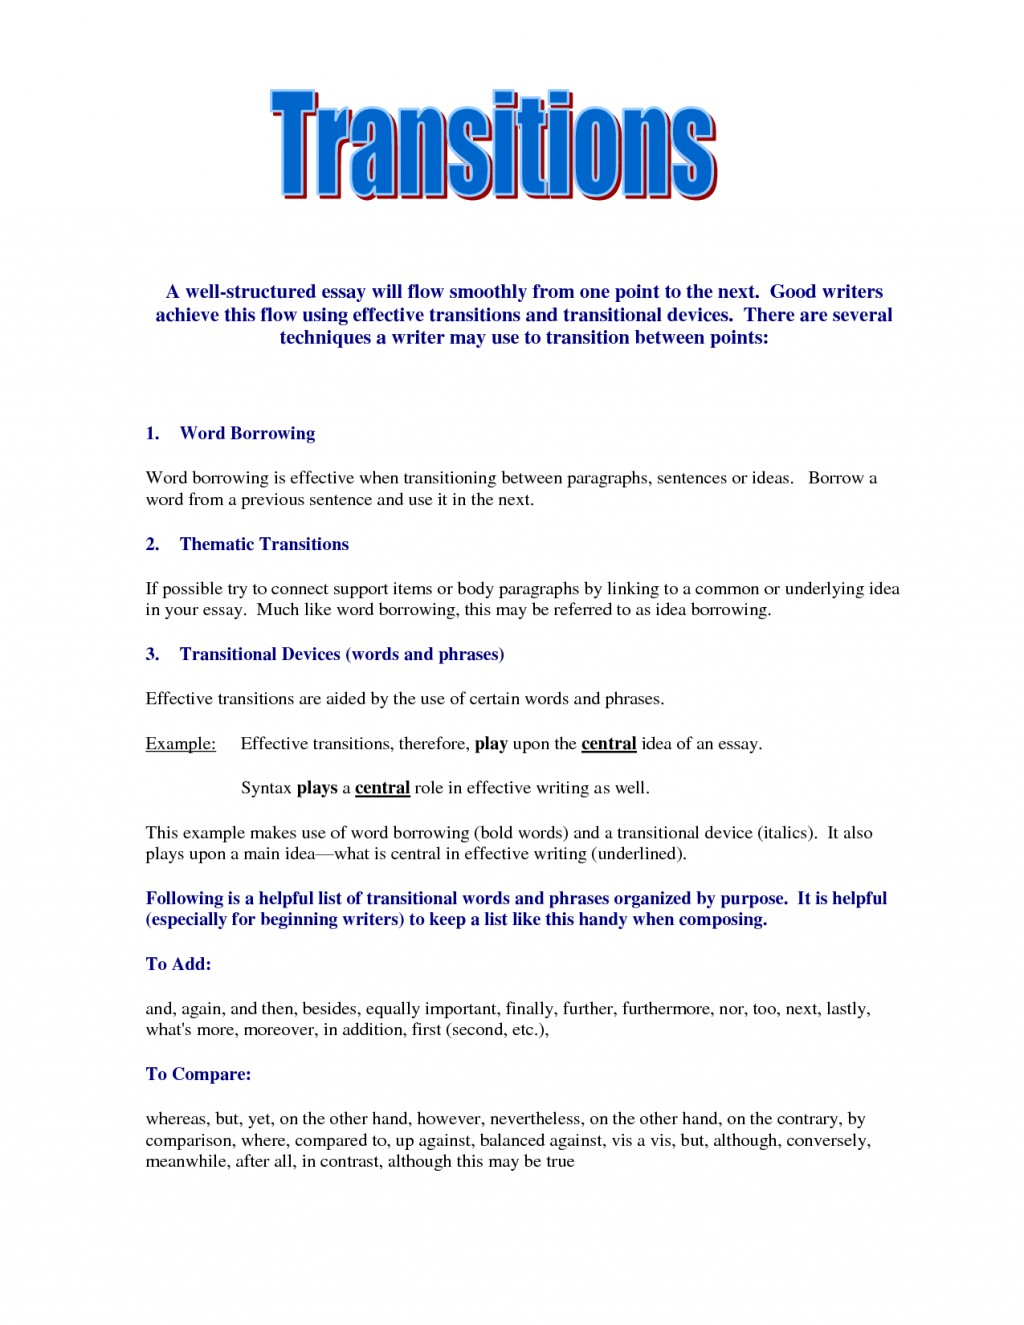 023 Good Essay Transitions Example Awesome Collection Of Transition Sentences Examples For Essays Your Stupendous Conclusion Paper Large